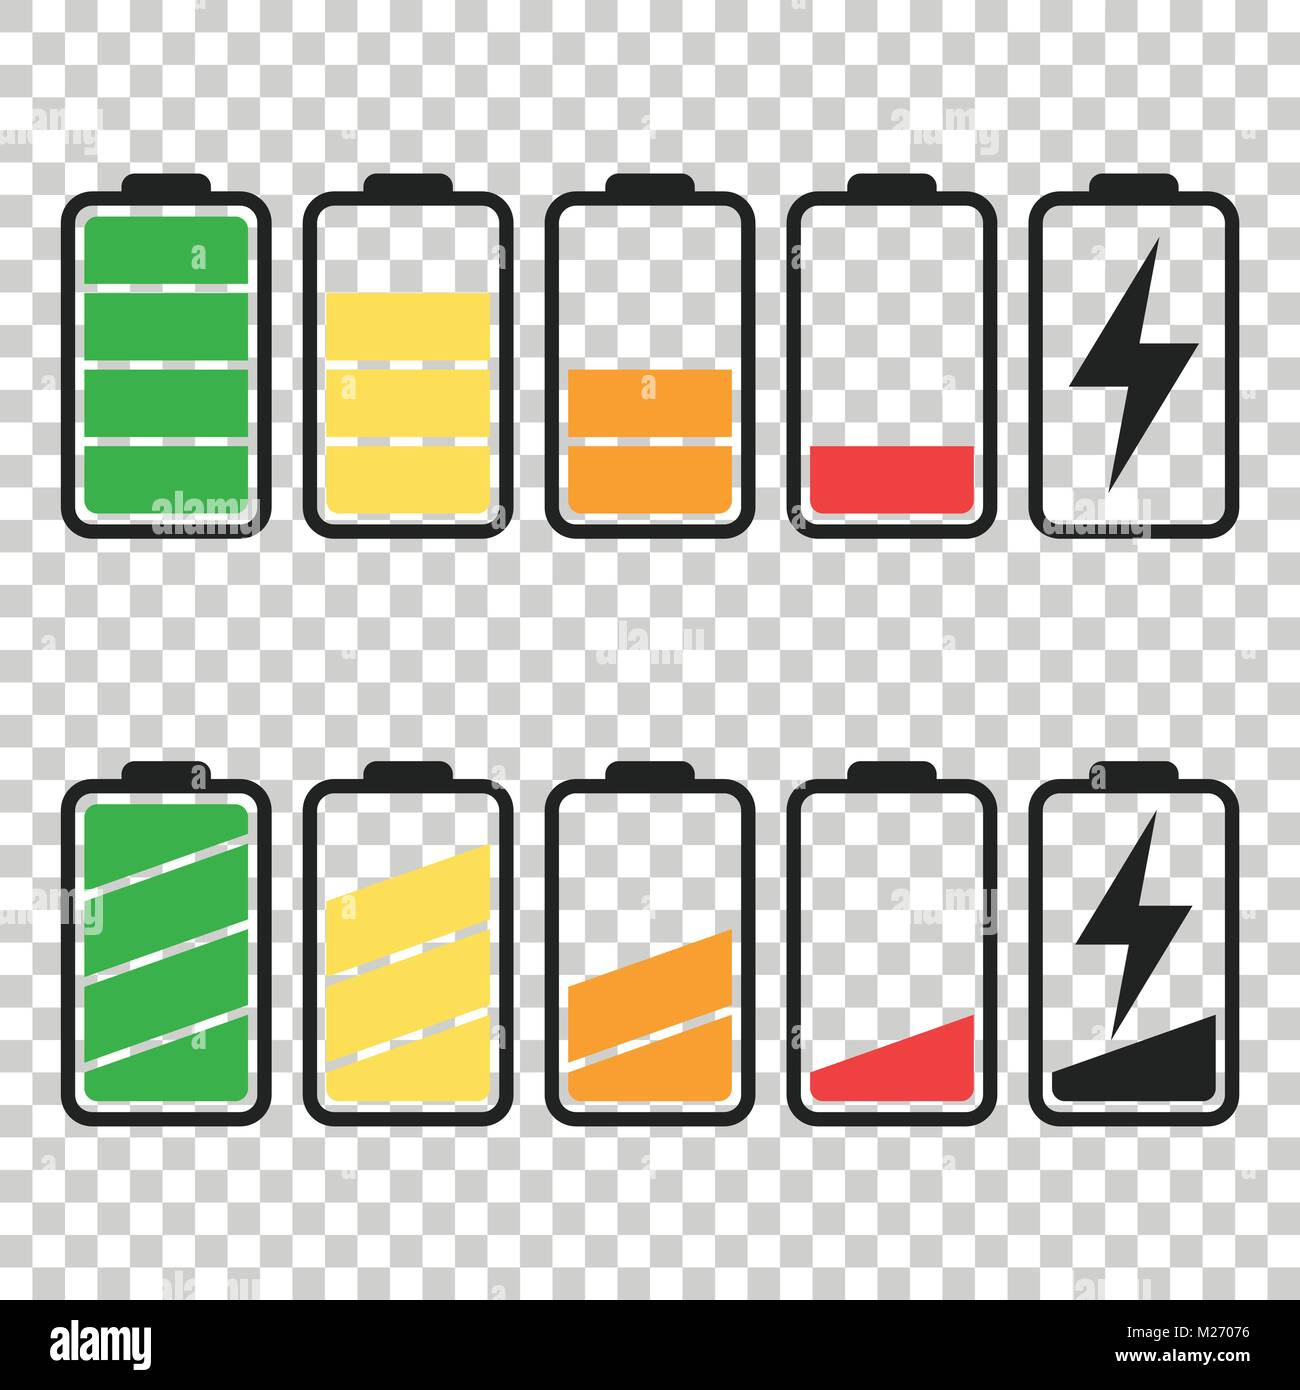 Battery Half Icon Sign Symbol Stockfotos & Battery Half Icon Sign ...